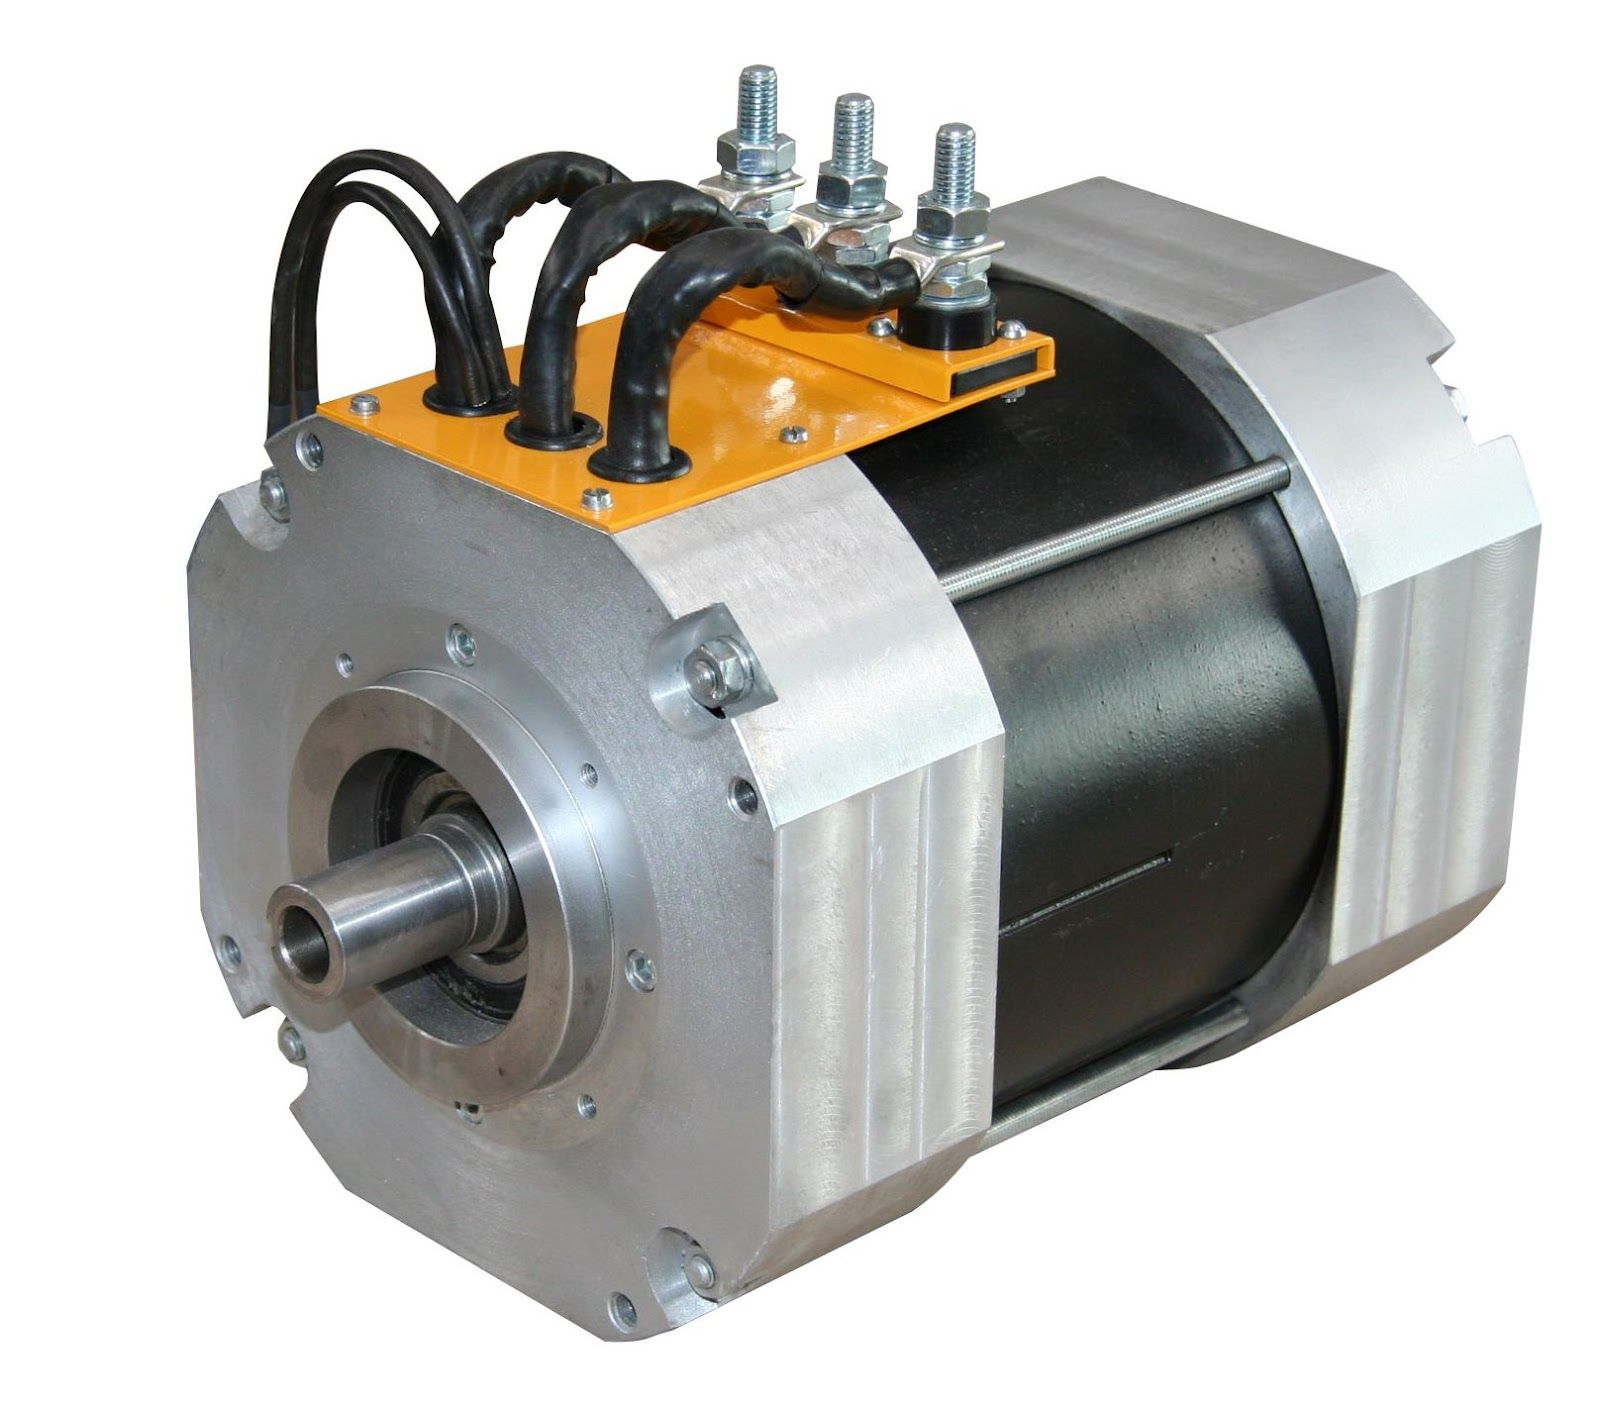 electric motors for cars: 10AC9 3-phase ac motor | Vehículos ...